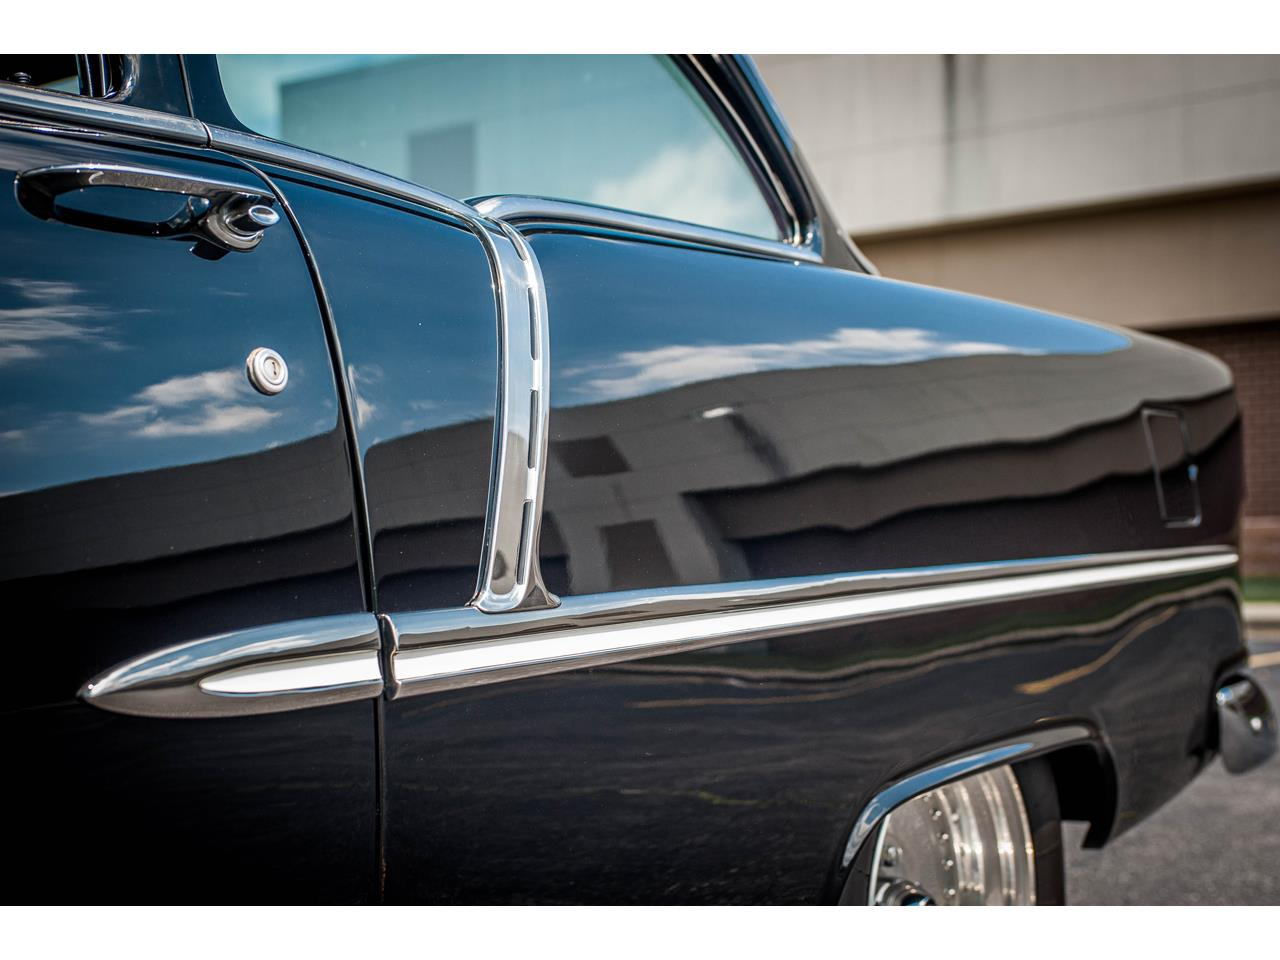 Large Picture of 1955 Chevrolet Bel Air located in Illinois - $48,500.00 Offered by Gateway Classic Cars - St. Louis - QB9F